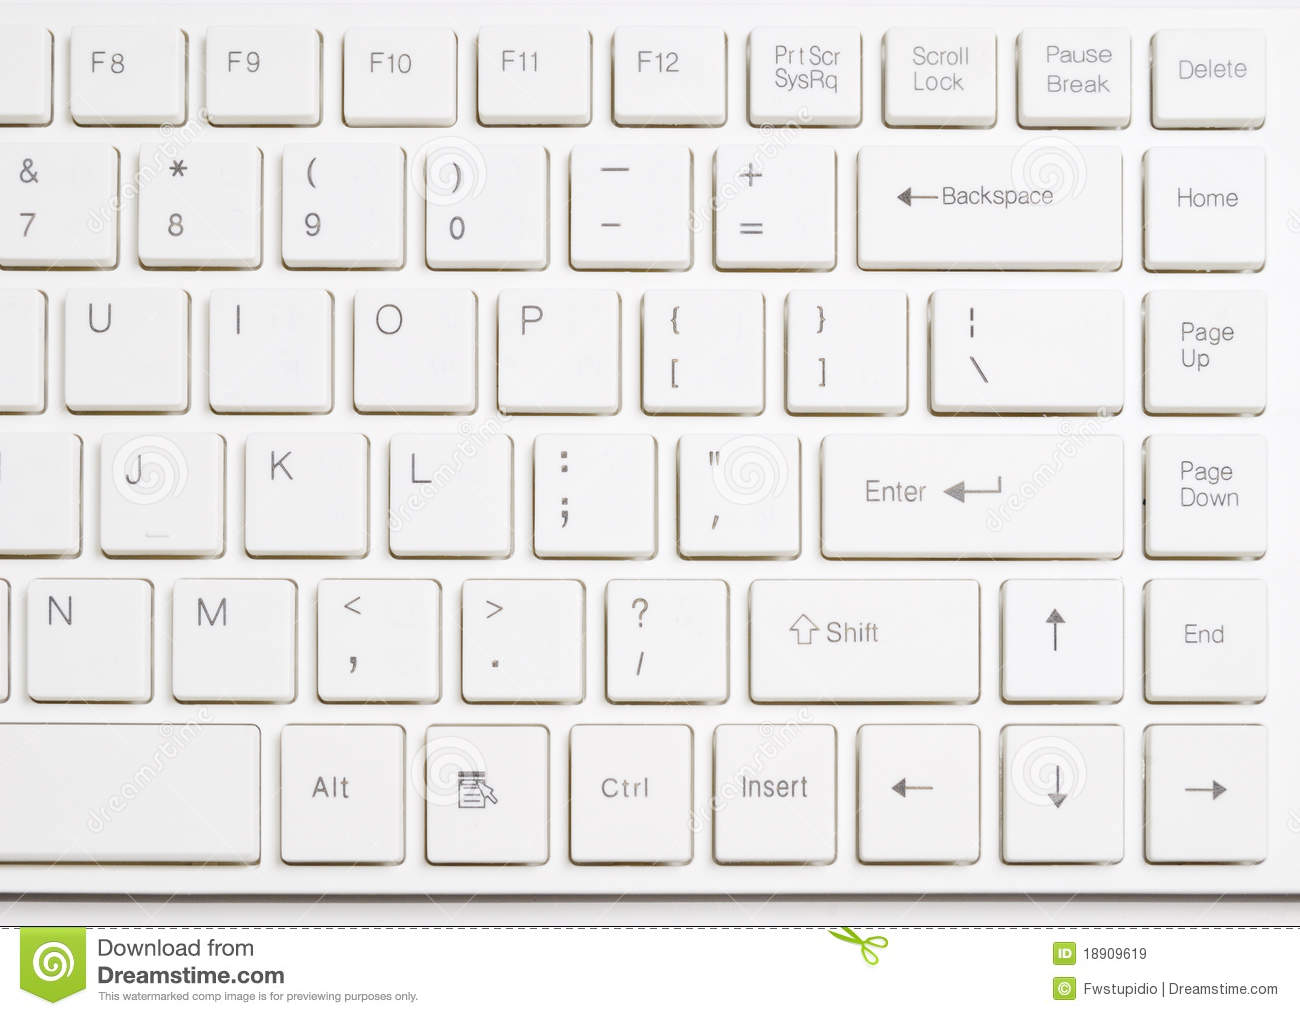 Handwriting Keyboard For Pc : writing on a white computer keyboard stock image 1855489 ~ Russianpoet.info Haus und Dekorationen